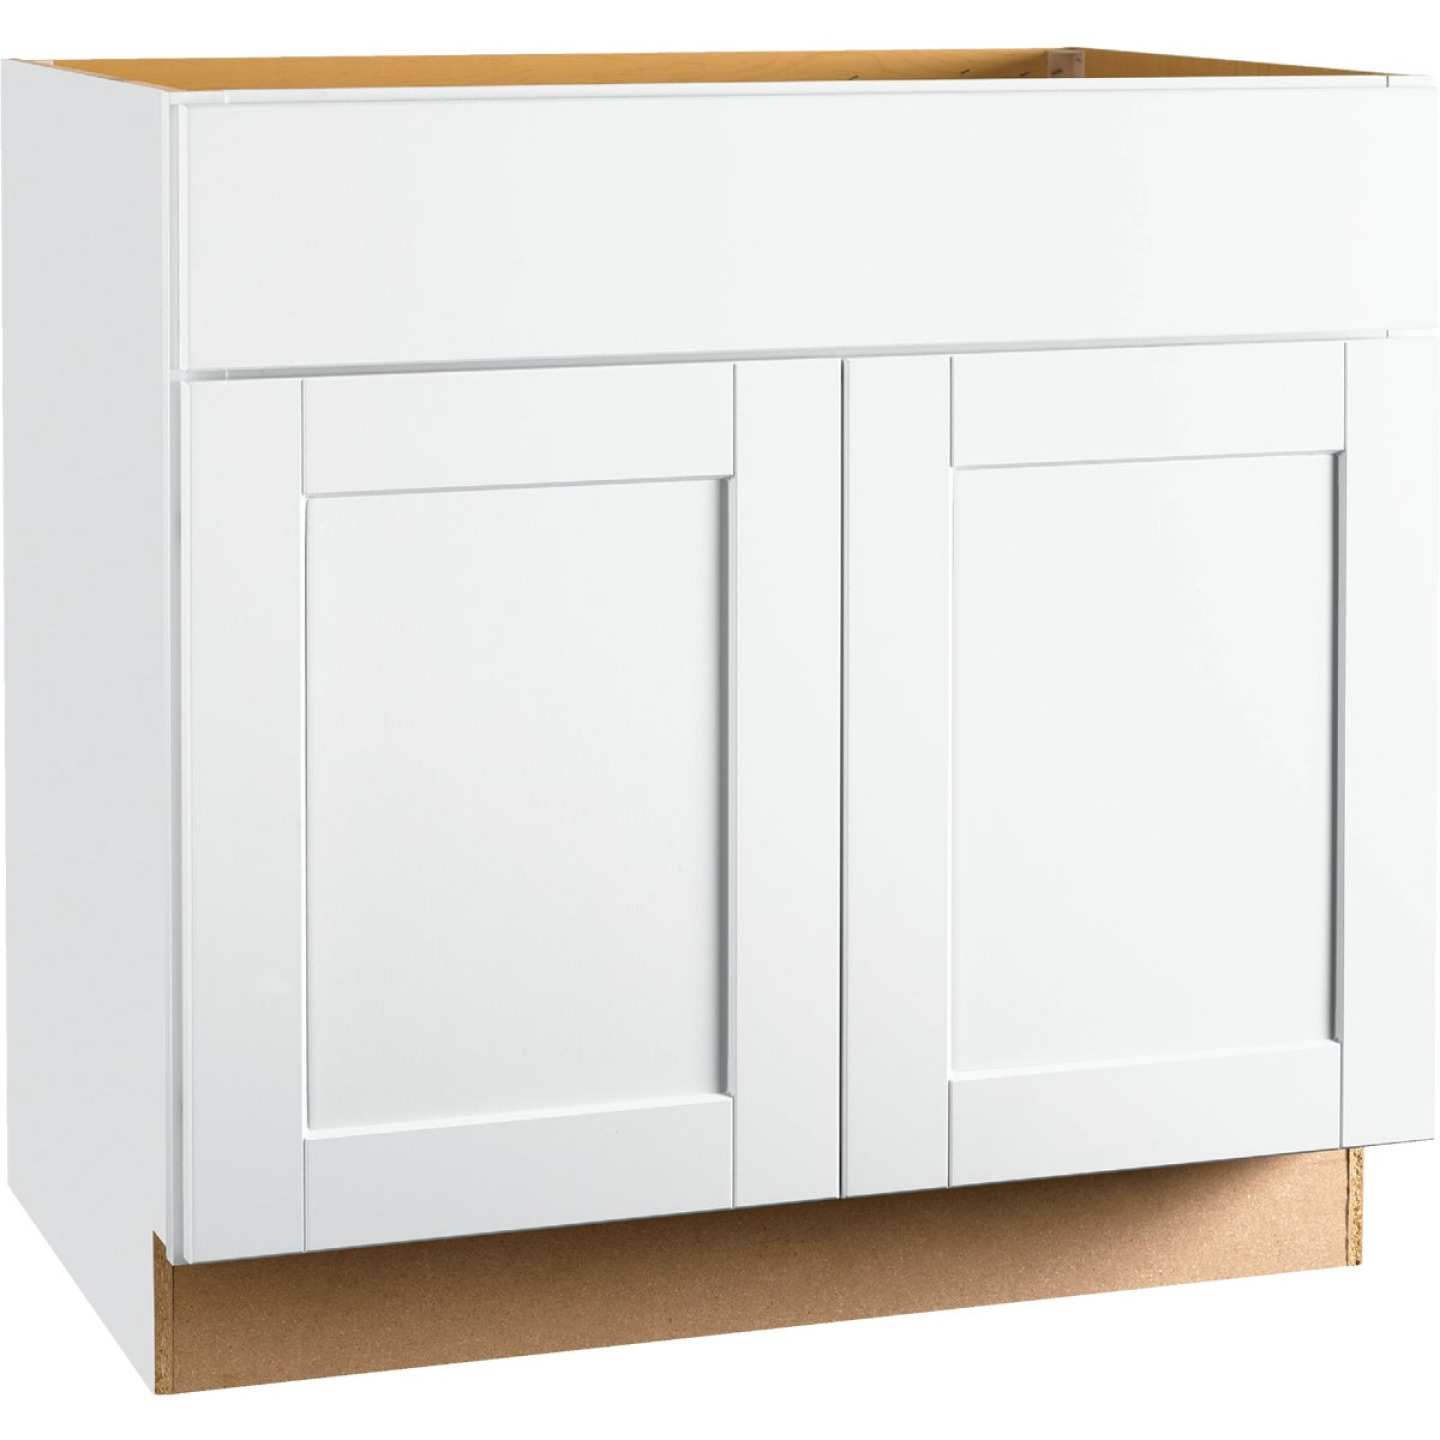 Continental Cabinets Andover Shaker 36 In. W x 34-1/2 In. H x 21 In. D White Vanity Base, 2 Door Image 1